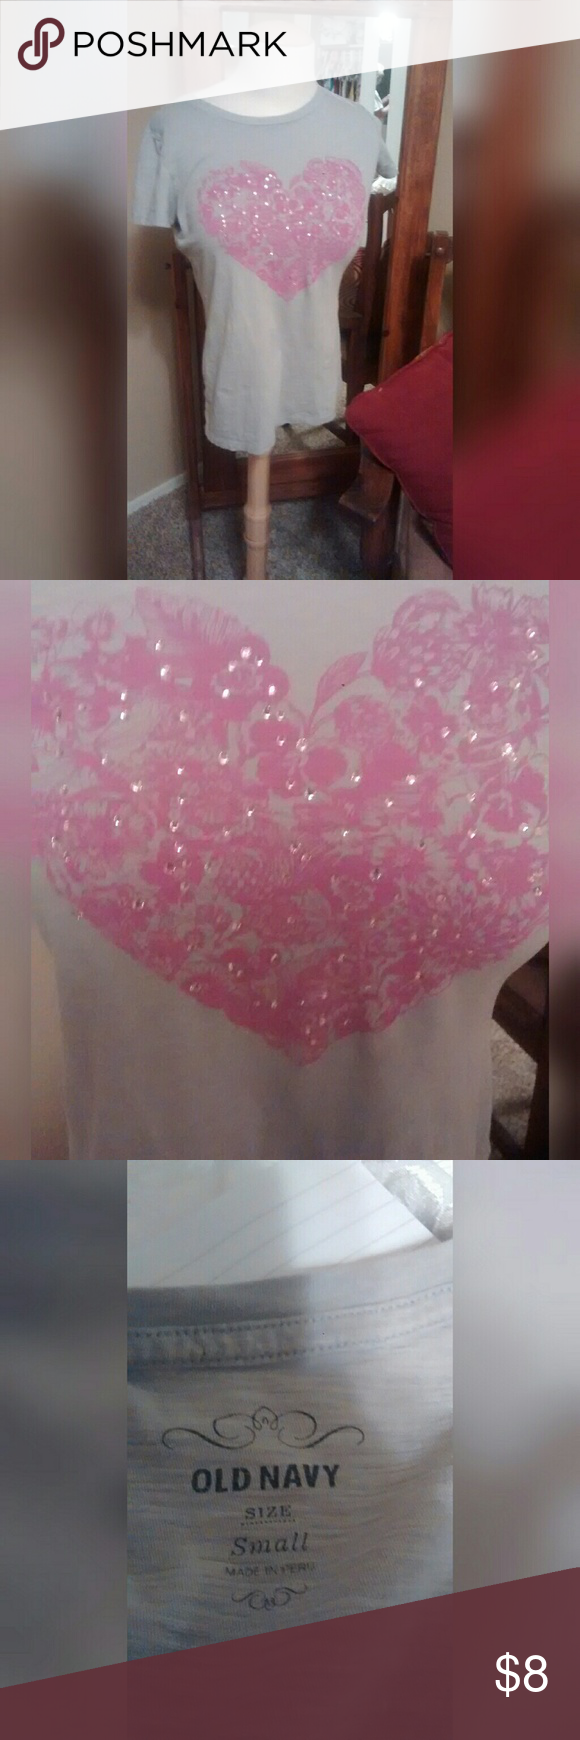 "Old Navy Tee Gray tee with pink heart. And a bit of bling! In excellent used condition. Size Small. Approx 24"" long from shoulder to hemline. Approx 20"" wide from pit to pit.  * Accepting most offers * Bundle and save! * Fast next day shipping!! Old Navy Tops Tees - Short Sleeve"